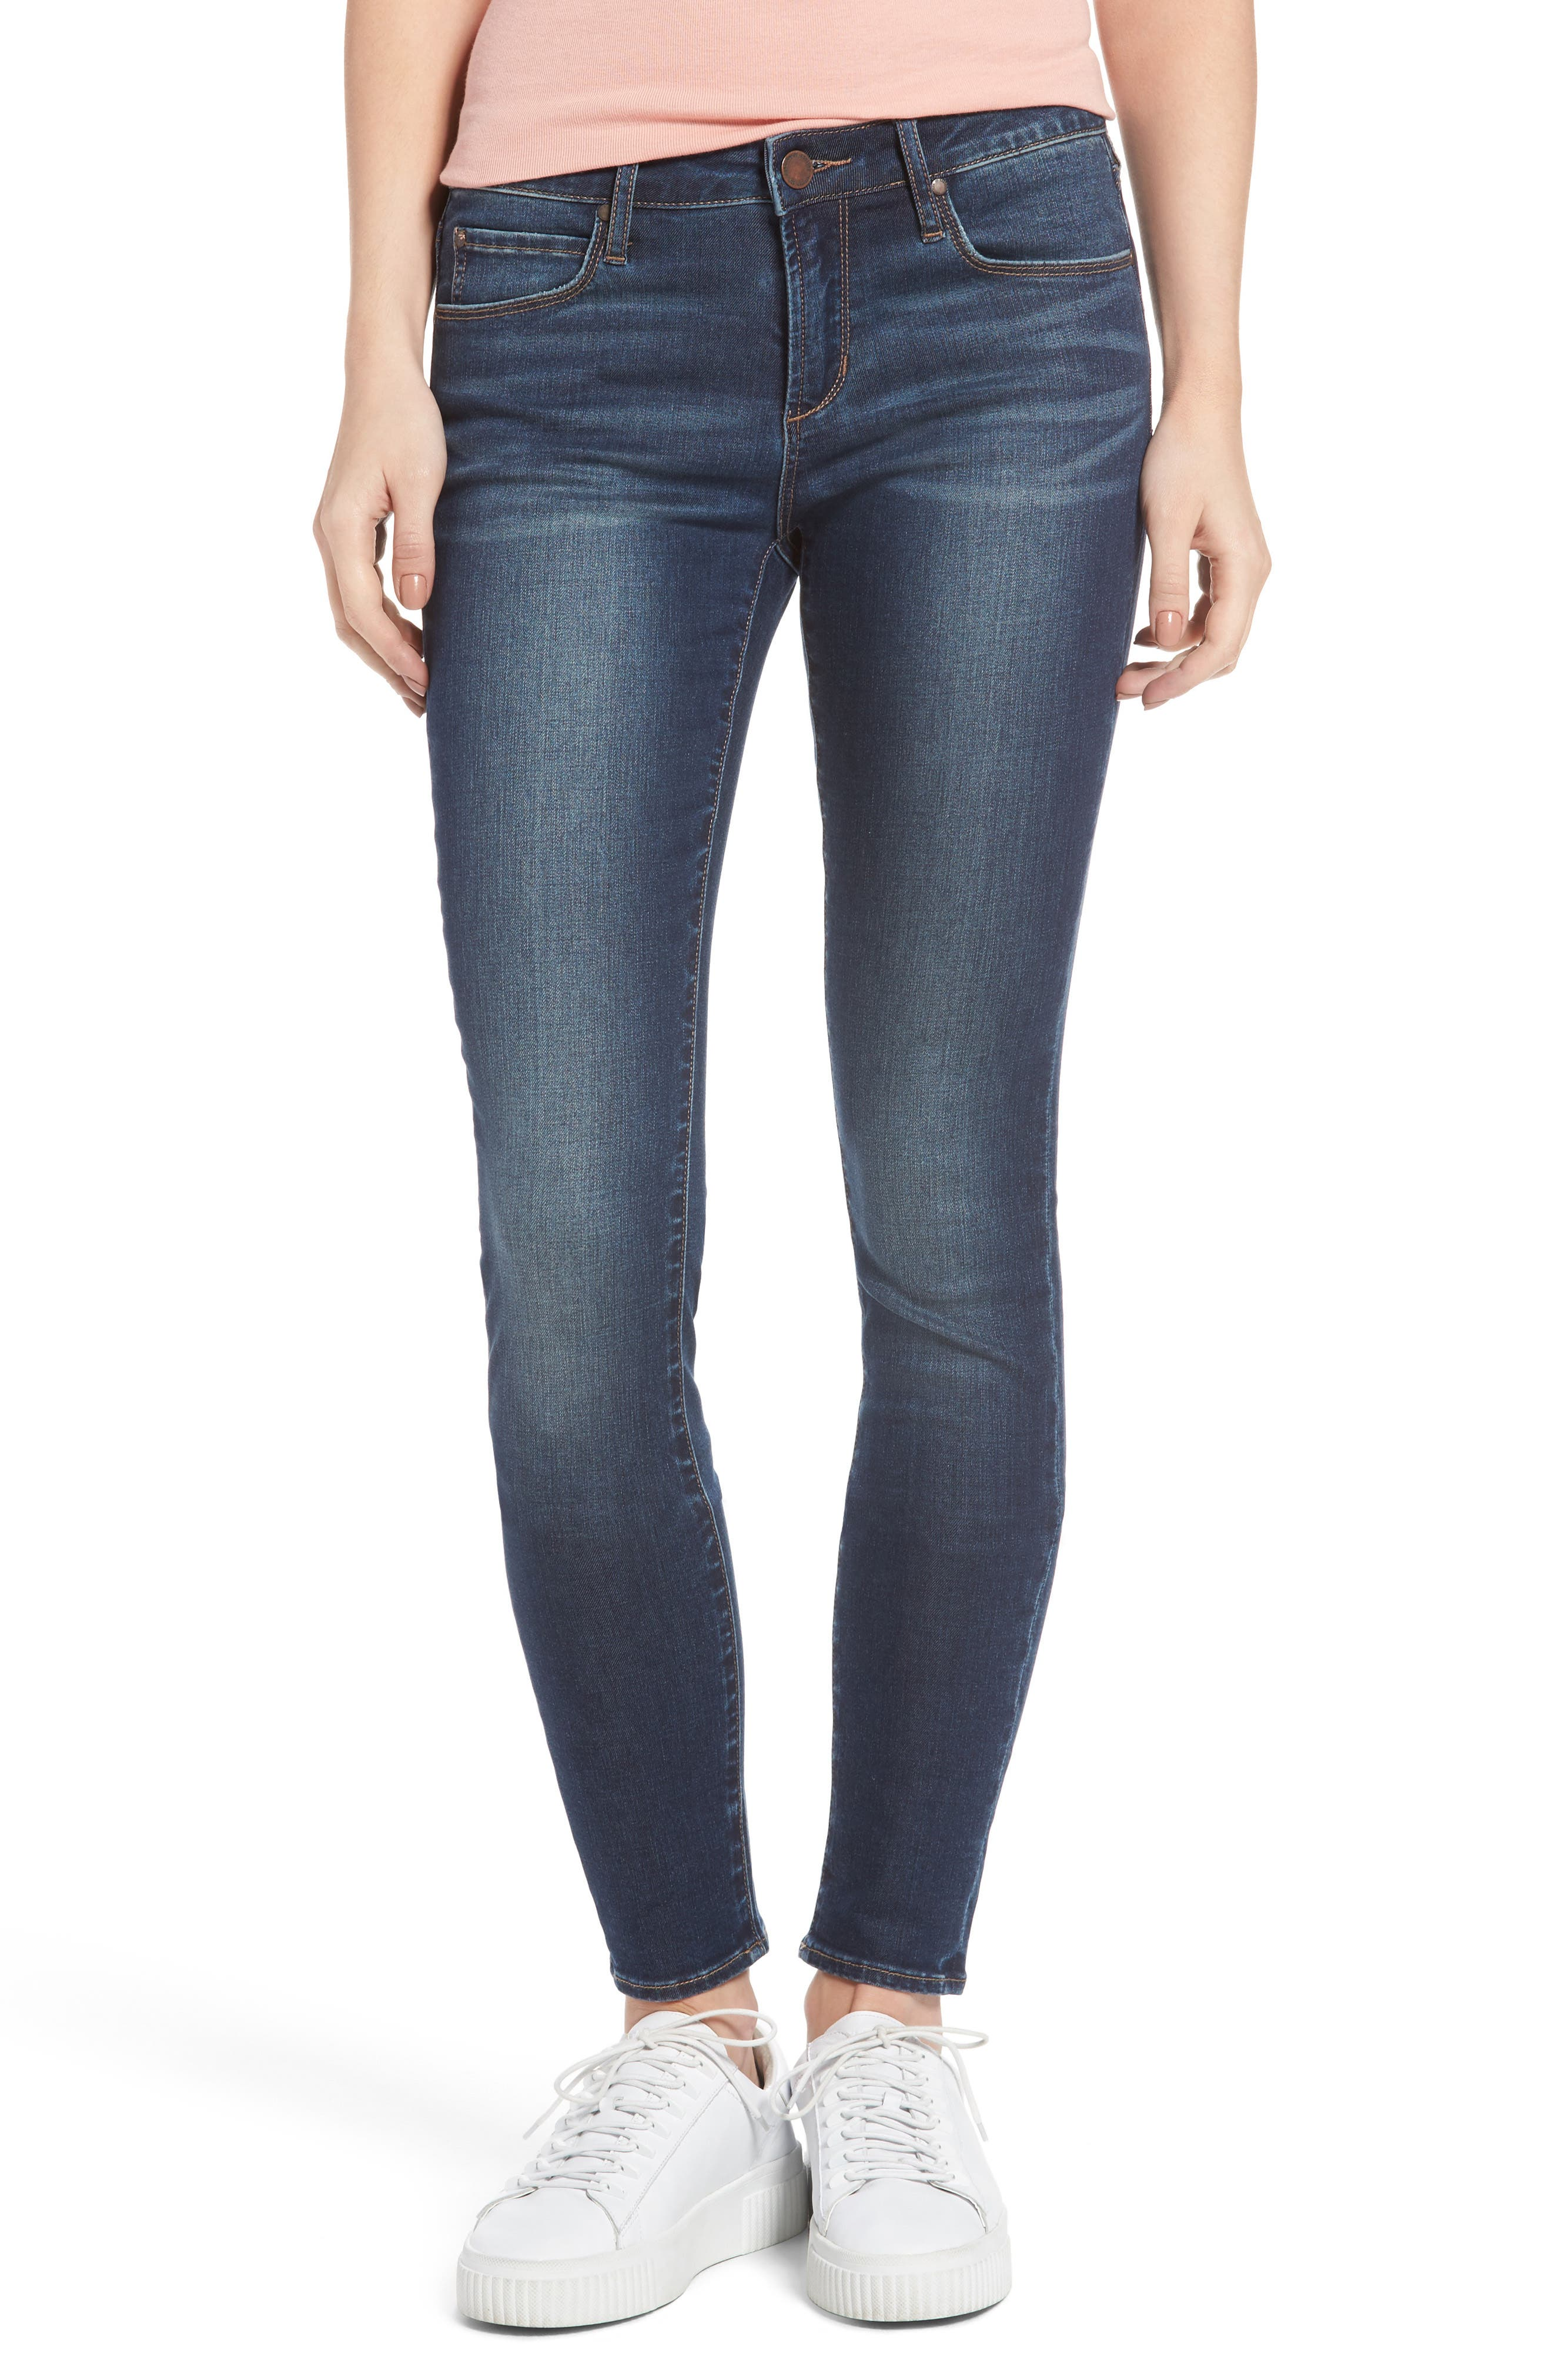 Find great deals on eBay for blue skinny jeans. Shop with confidence.